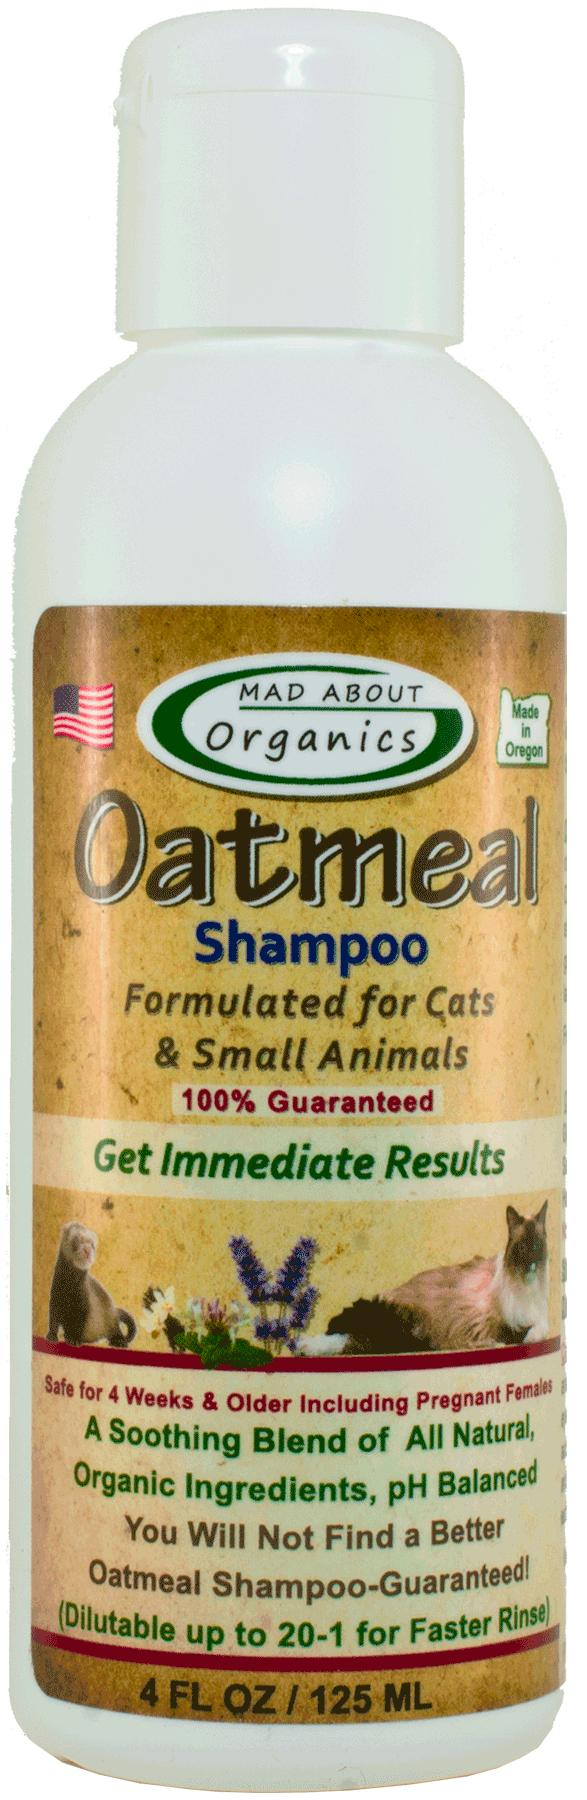 Mad About Organics Oatmeal Shampoo for Cats & Small Animals, 4-oz